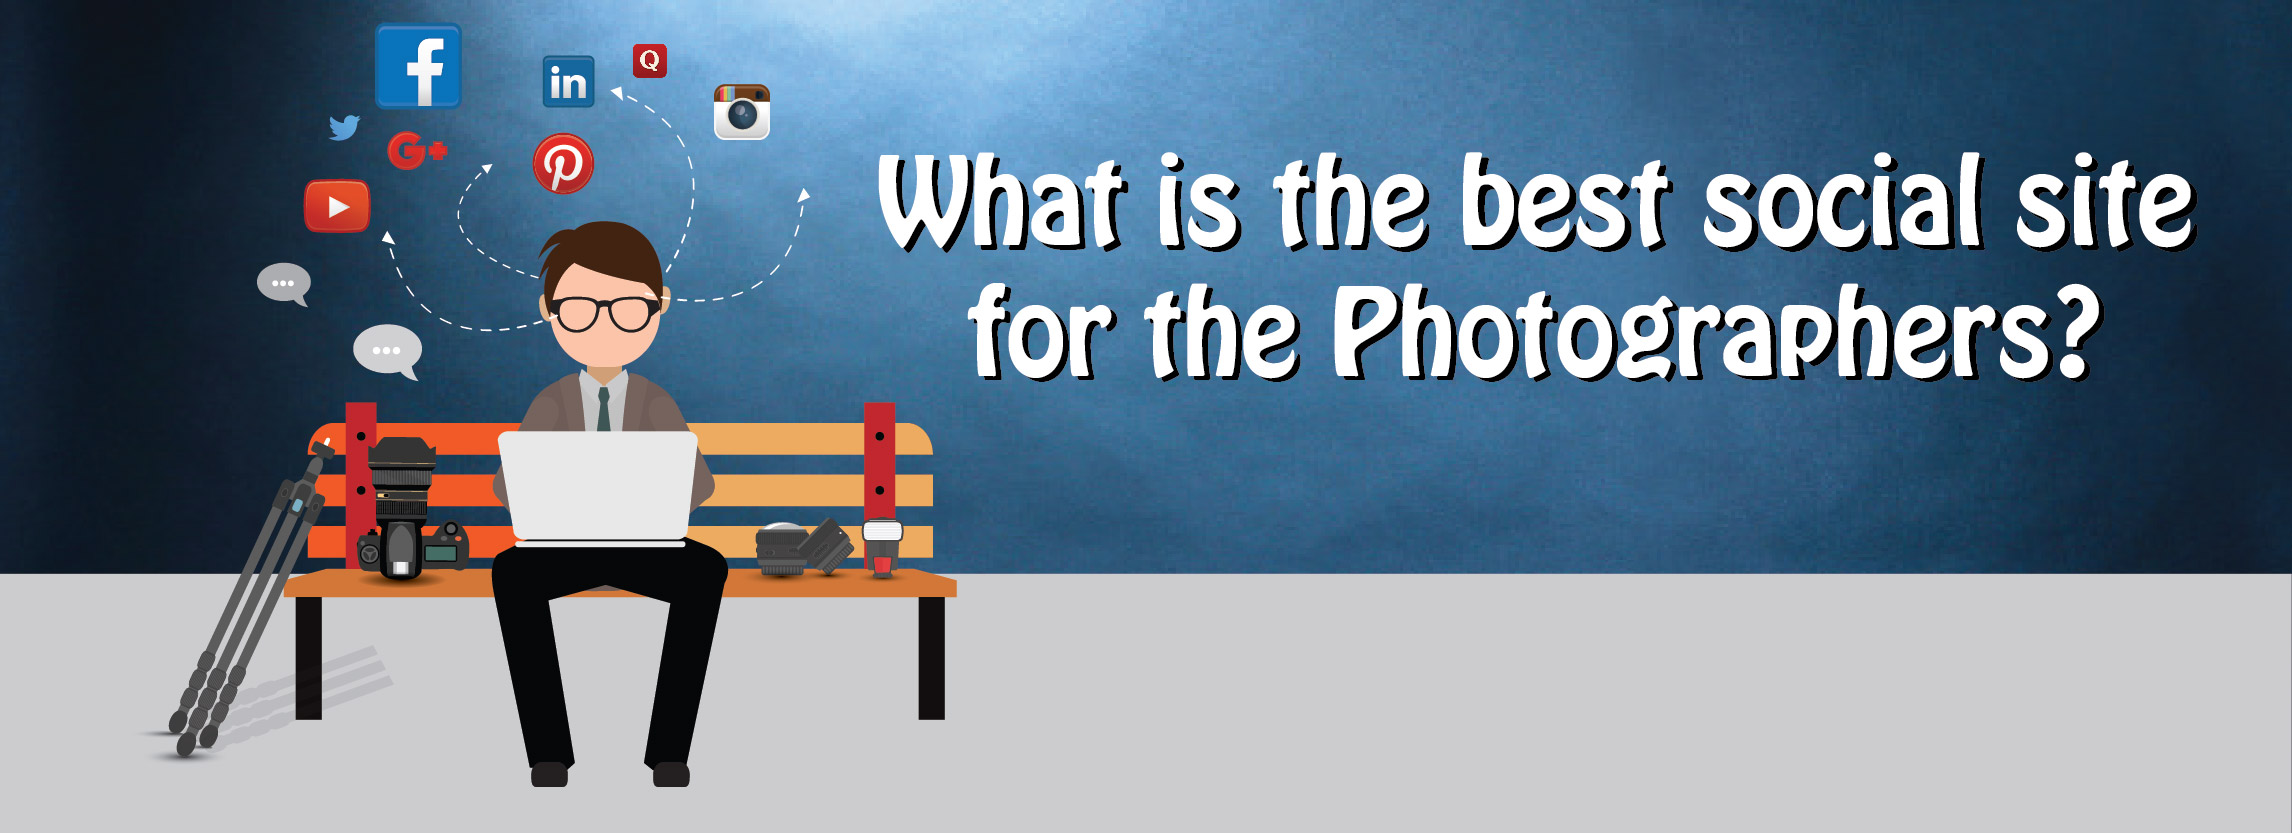 What is the best social site for the Photographers